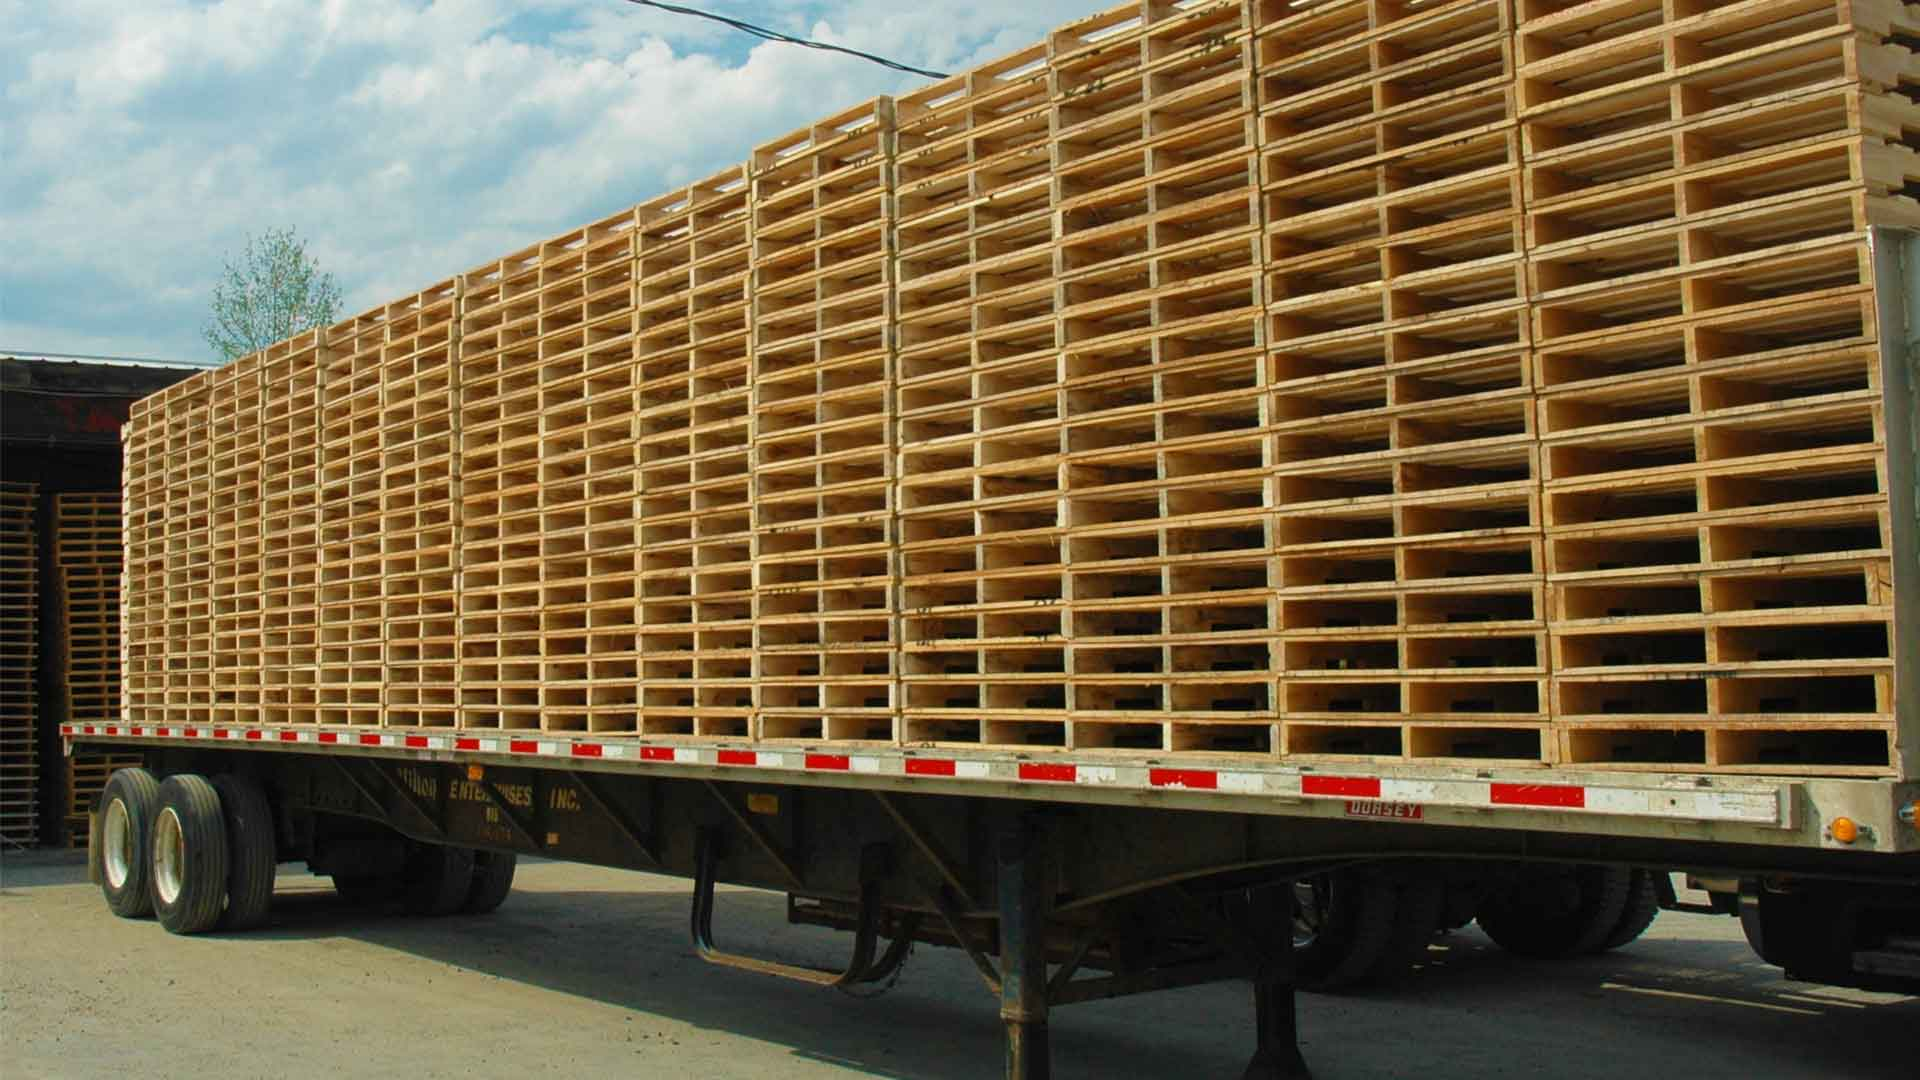 Wood-Pallets-Miami-Opa-Locka-Pallets